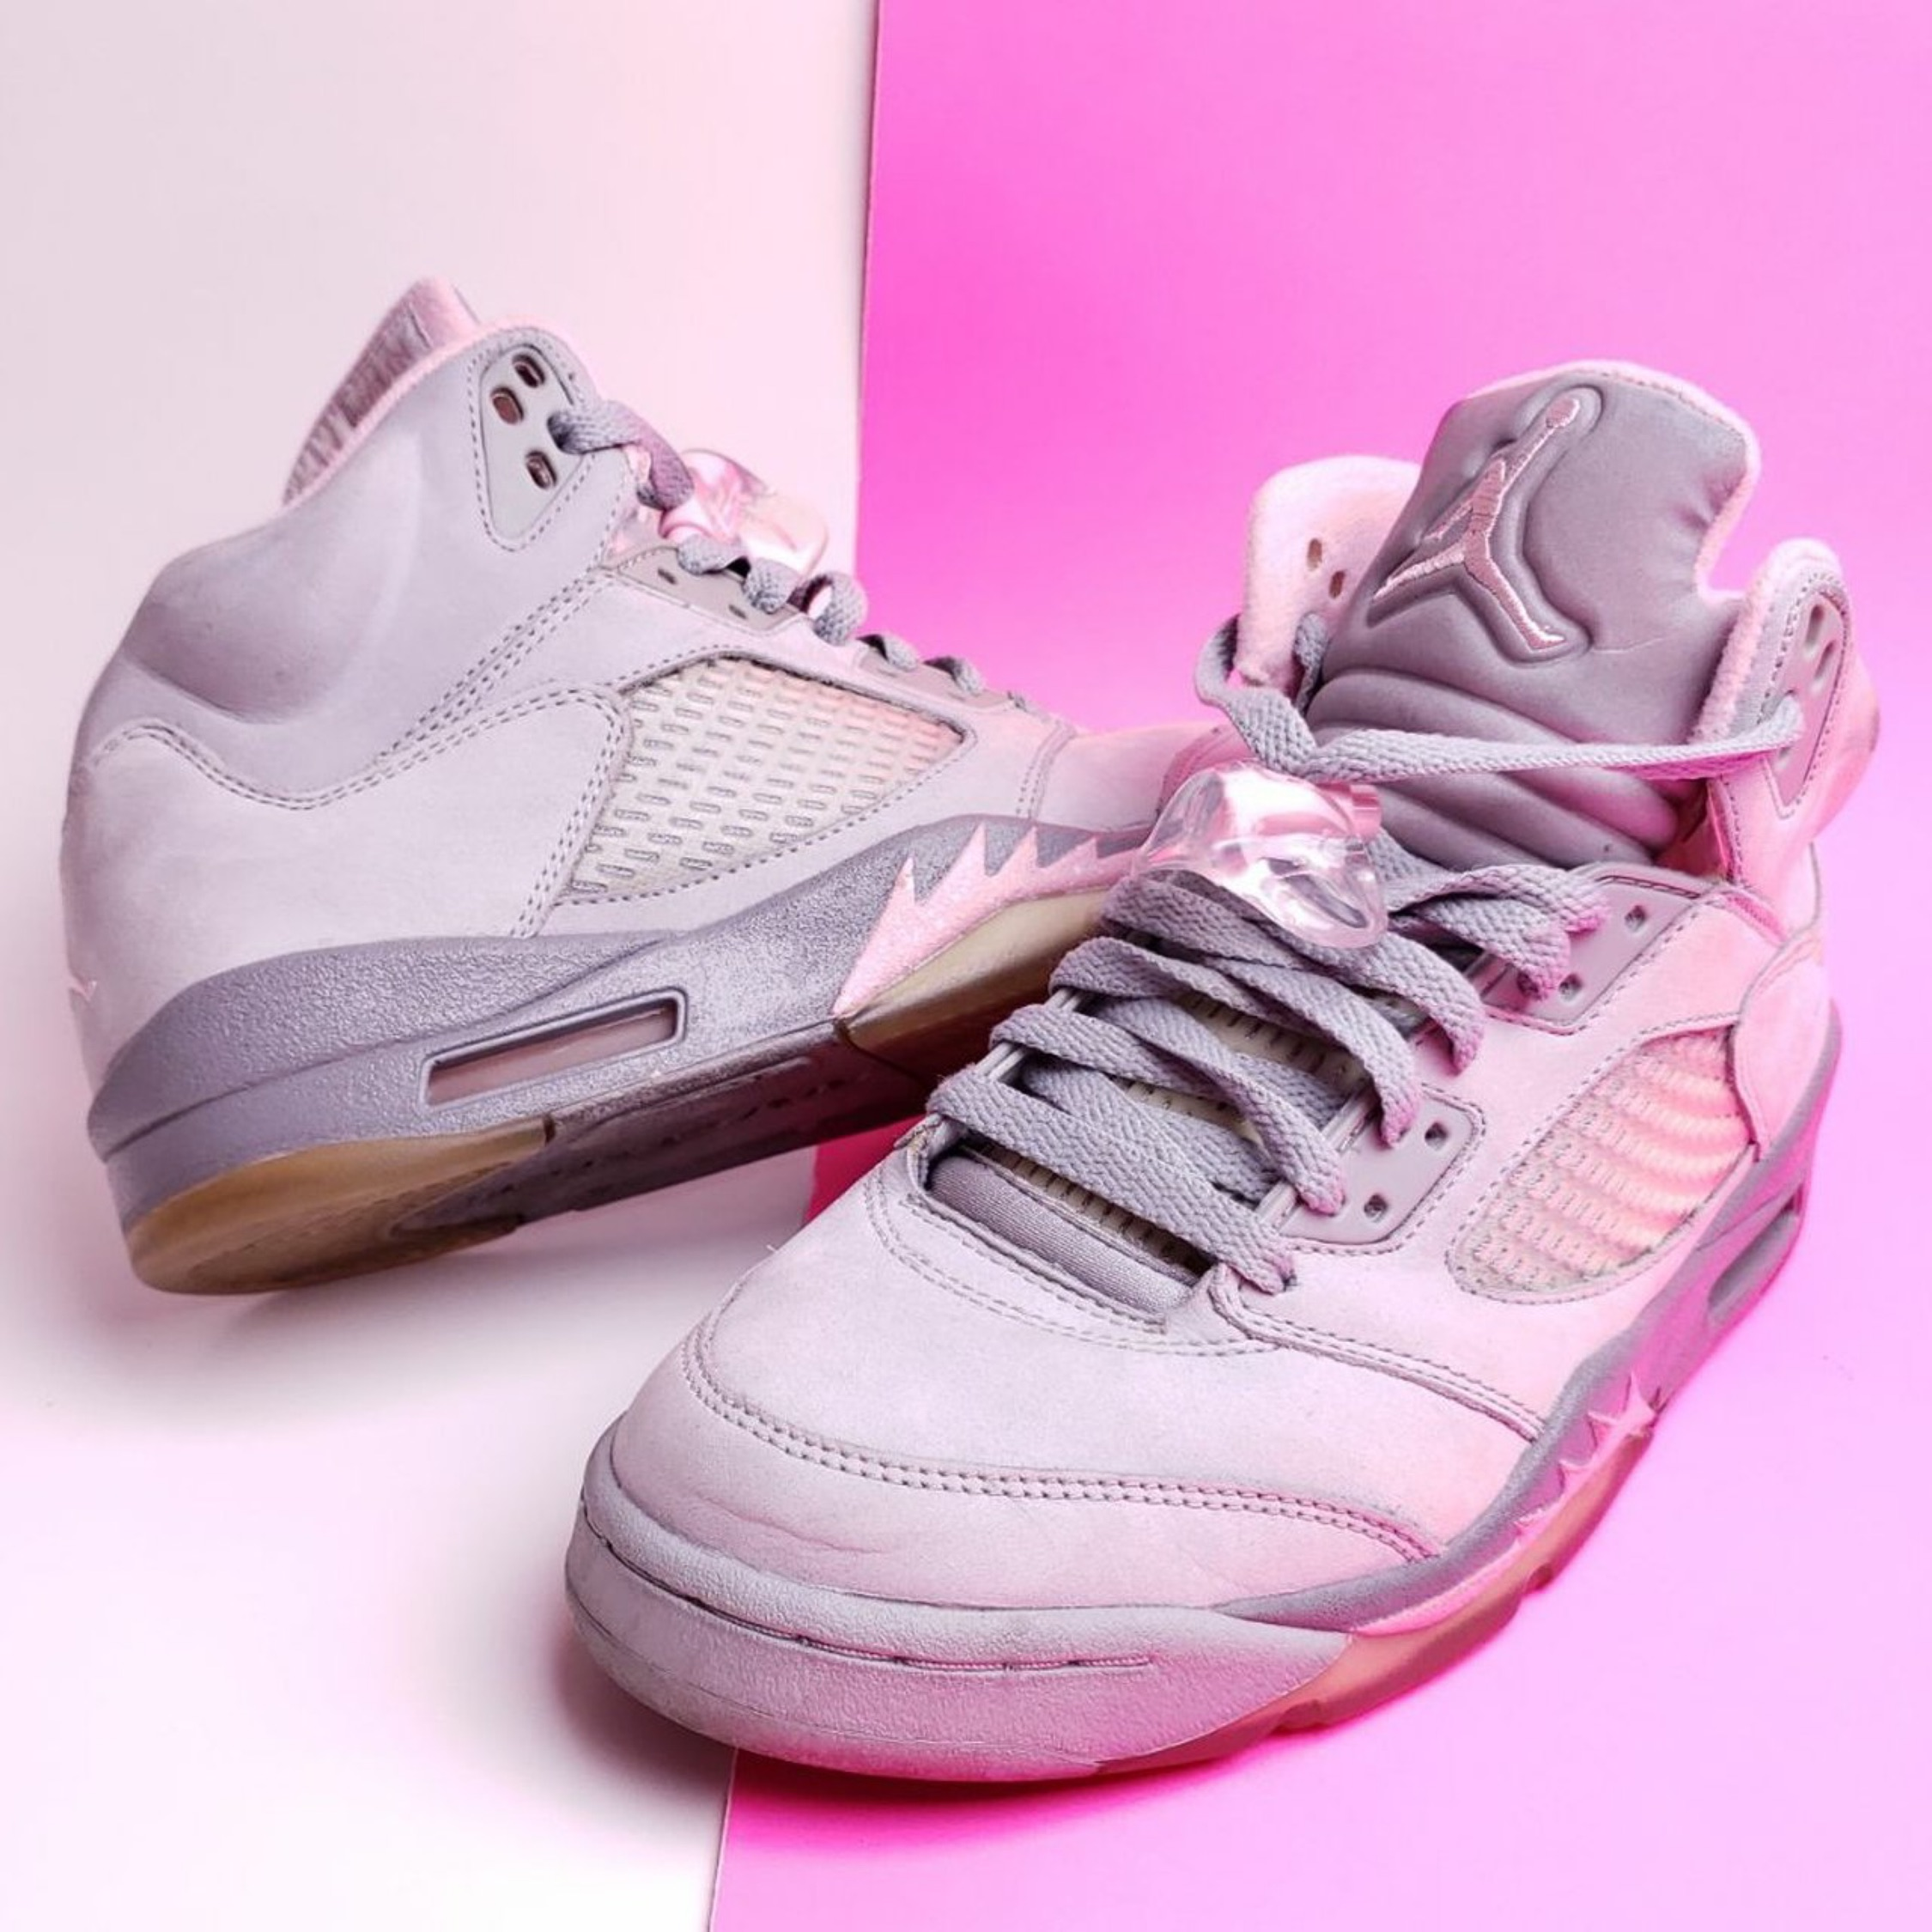 new styles 74be6 1c8f6 Air Jordan 5 Retro Shy Pink Stealth